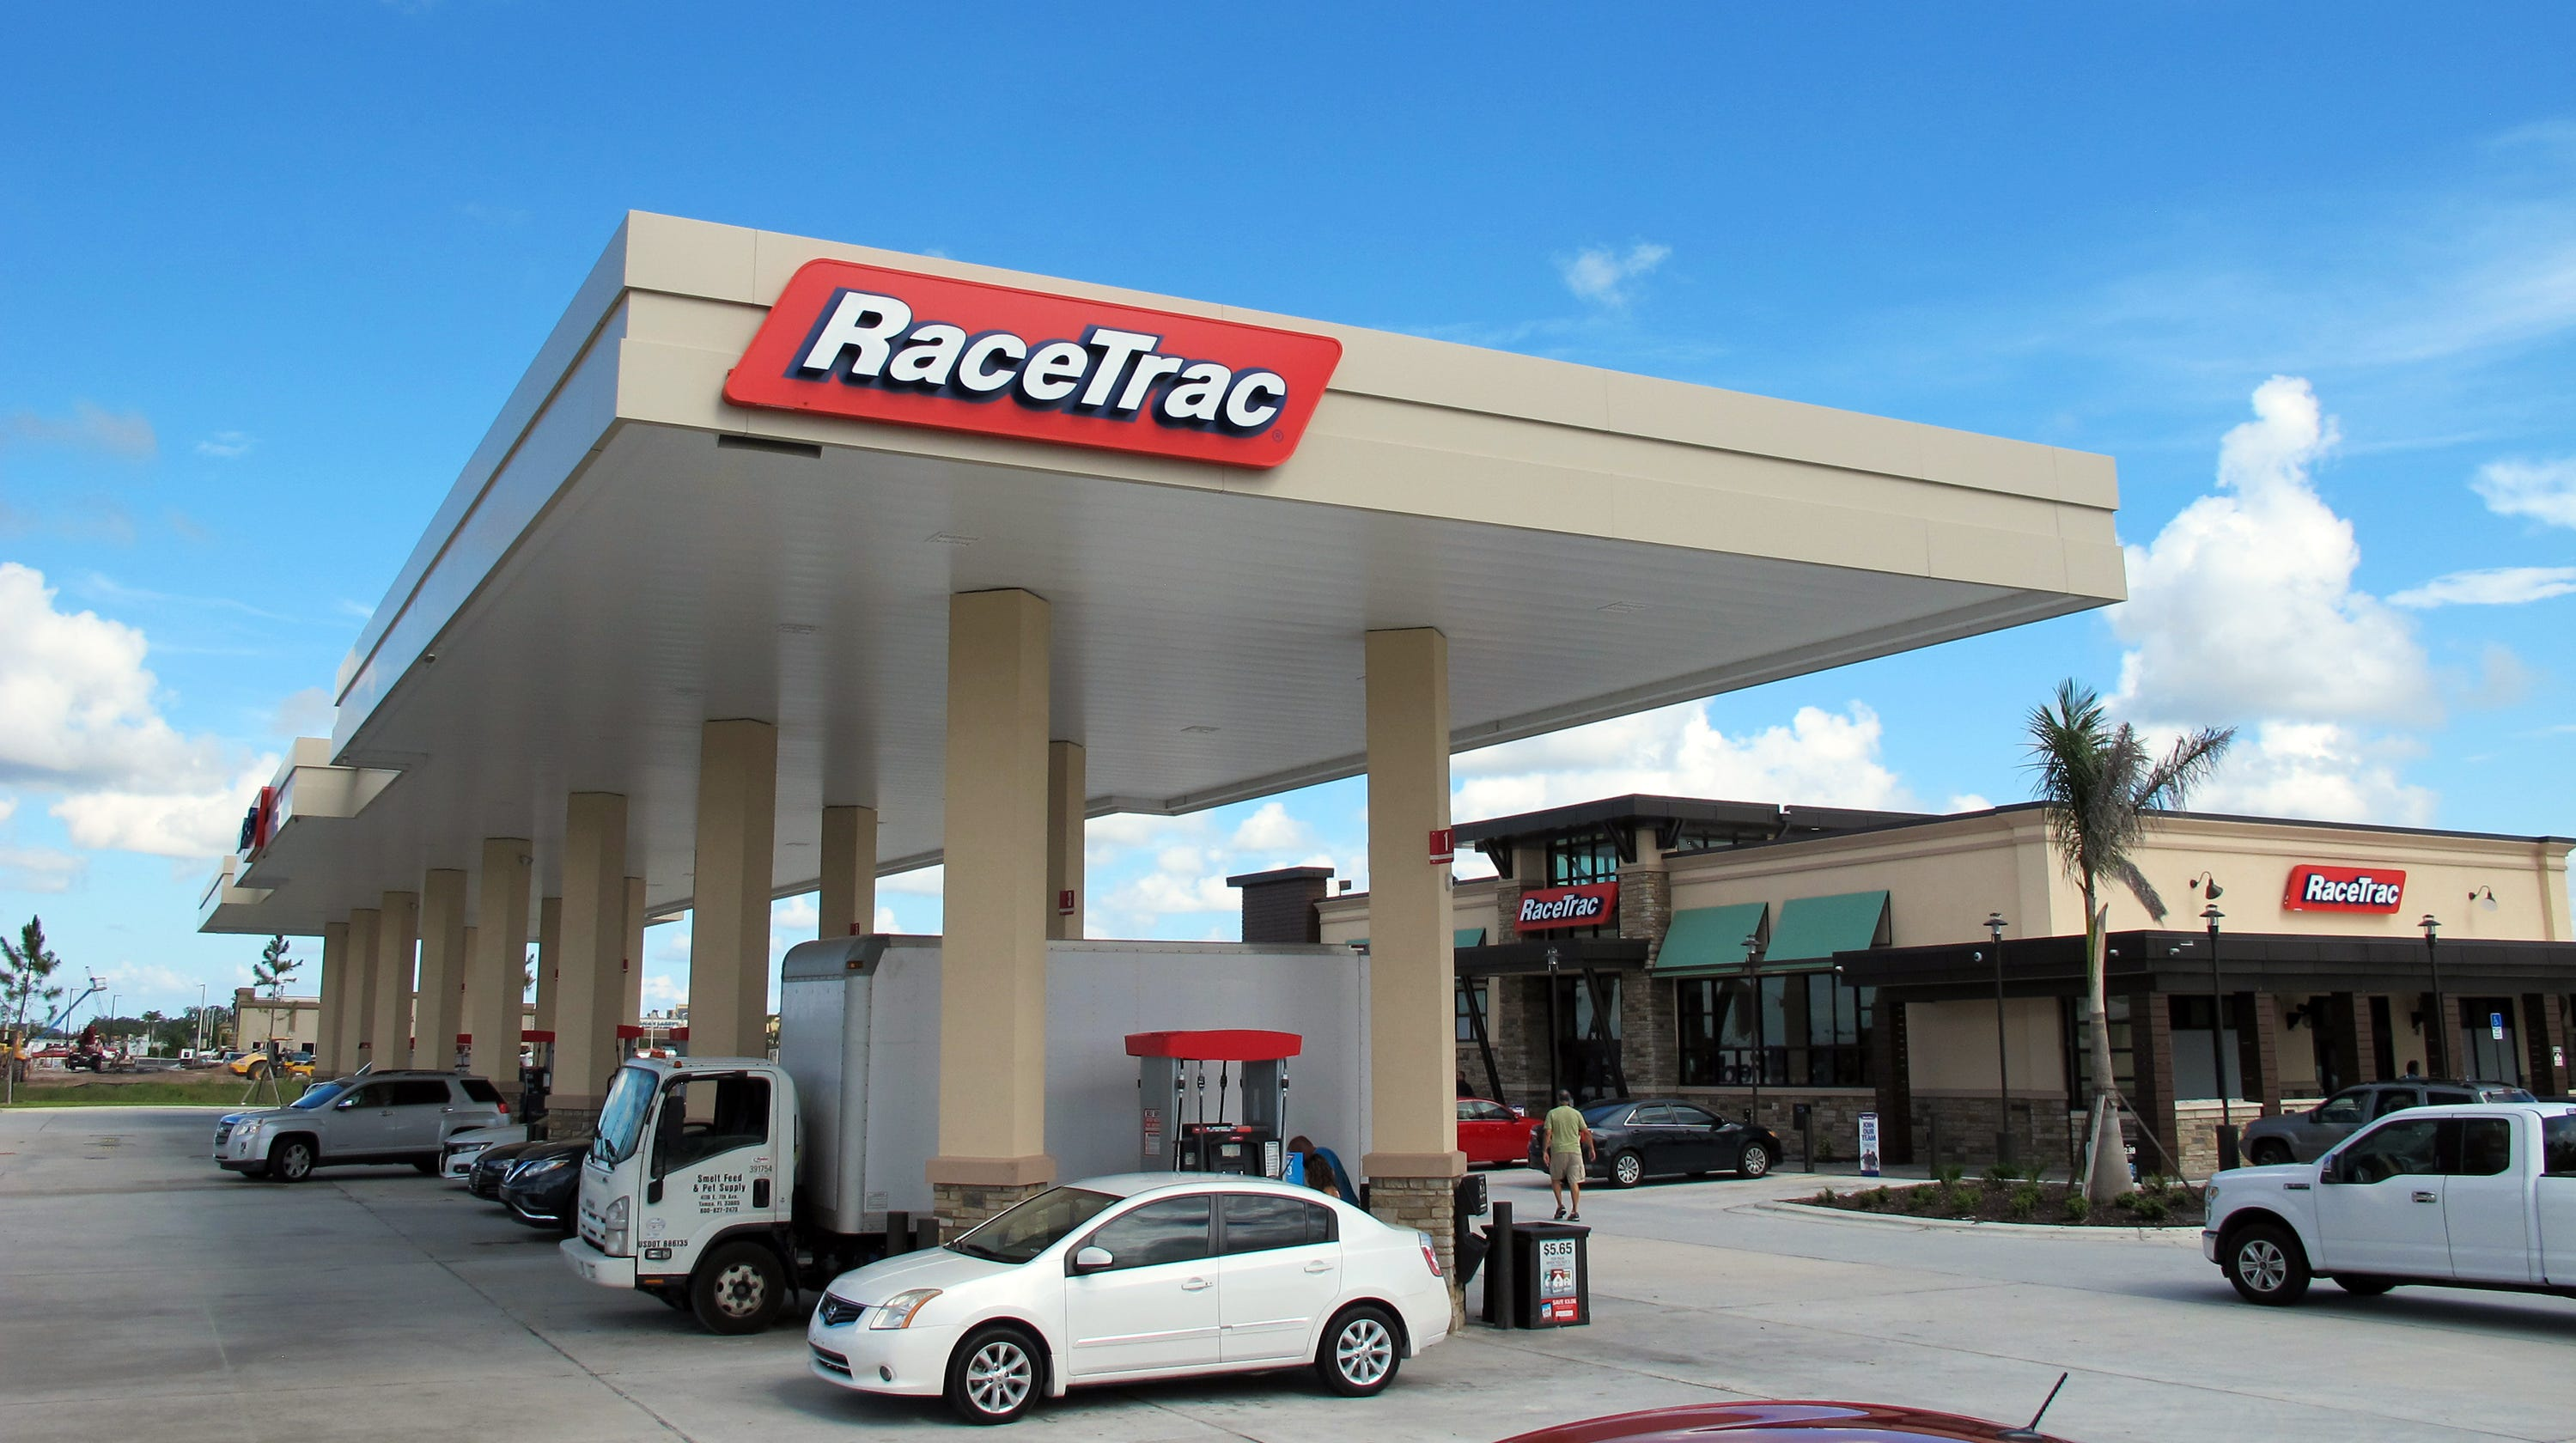 In the Know: RaceTrac plans two more stations, stores in